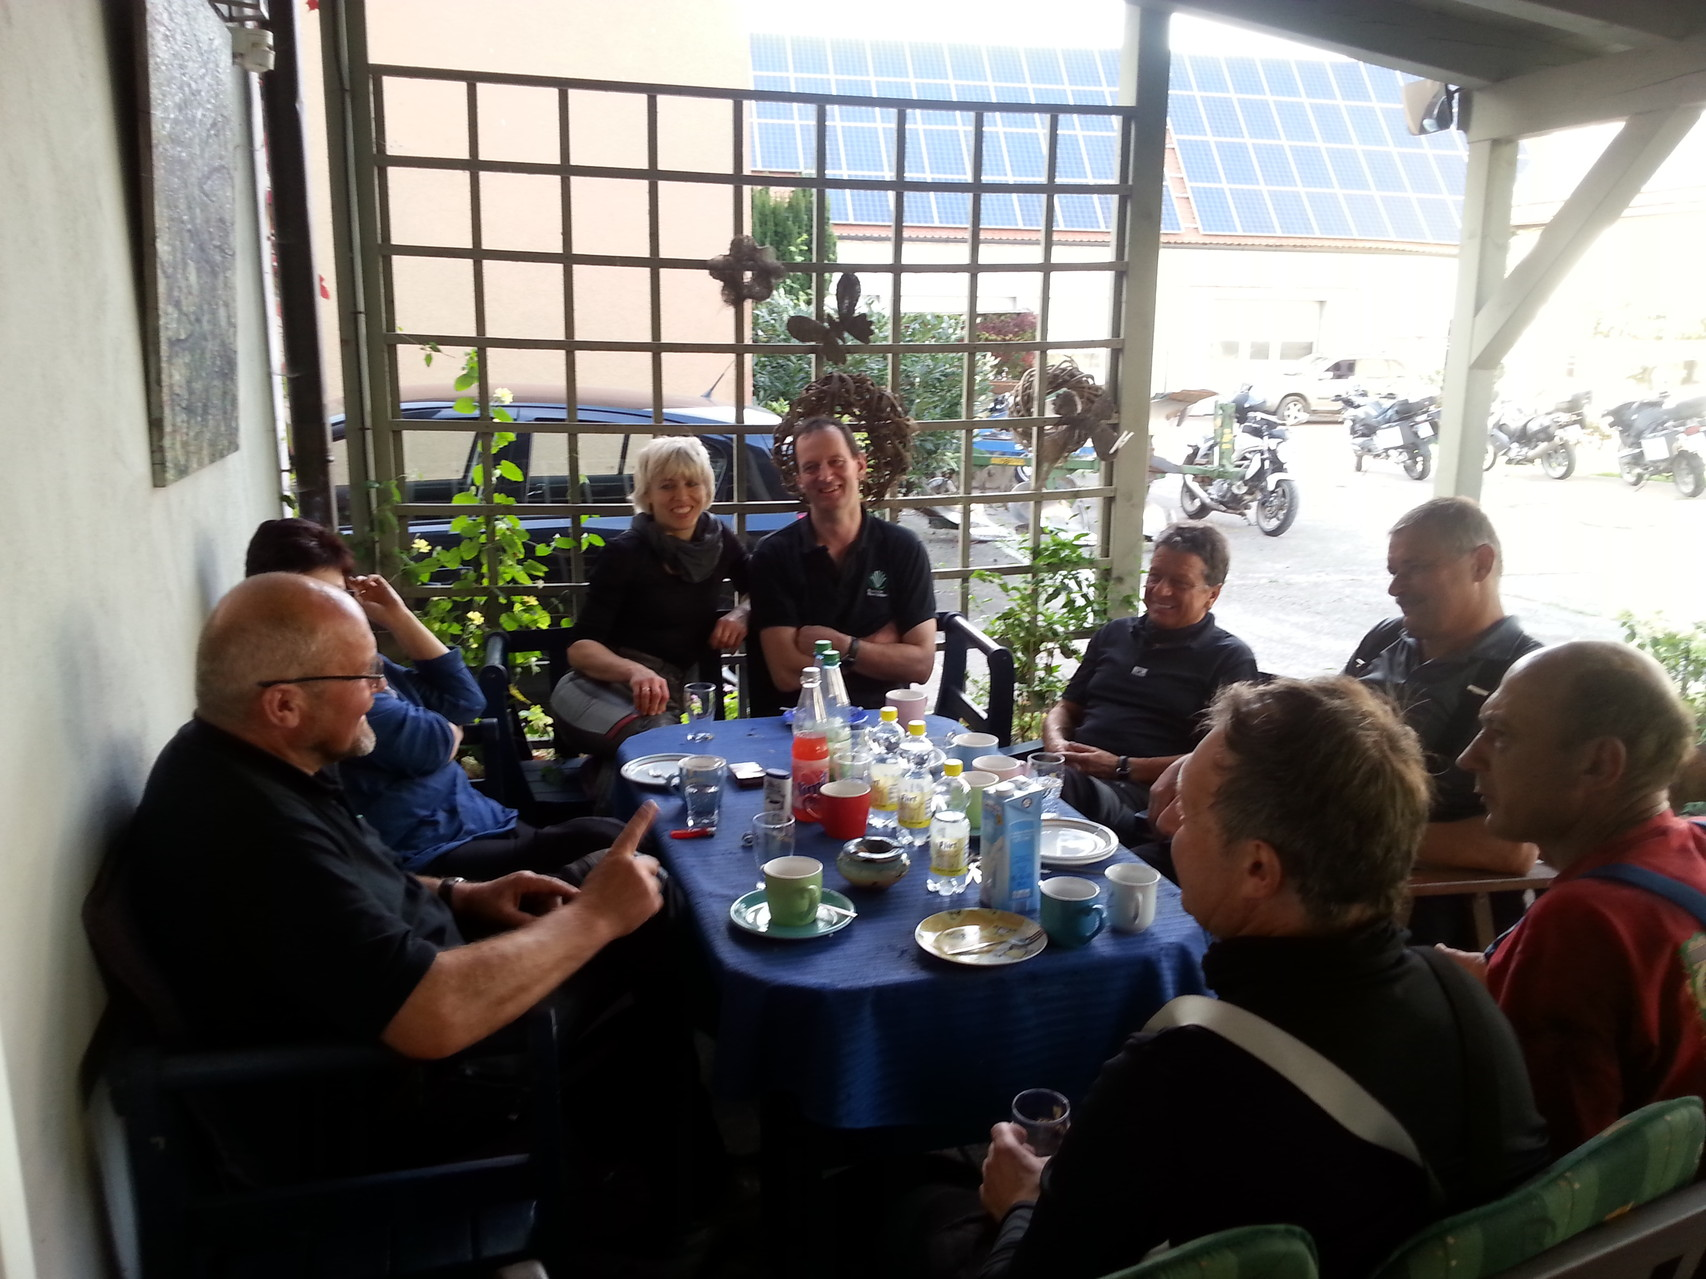 Kaffeepause in Oberlaimbach